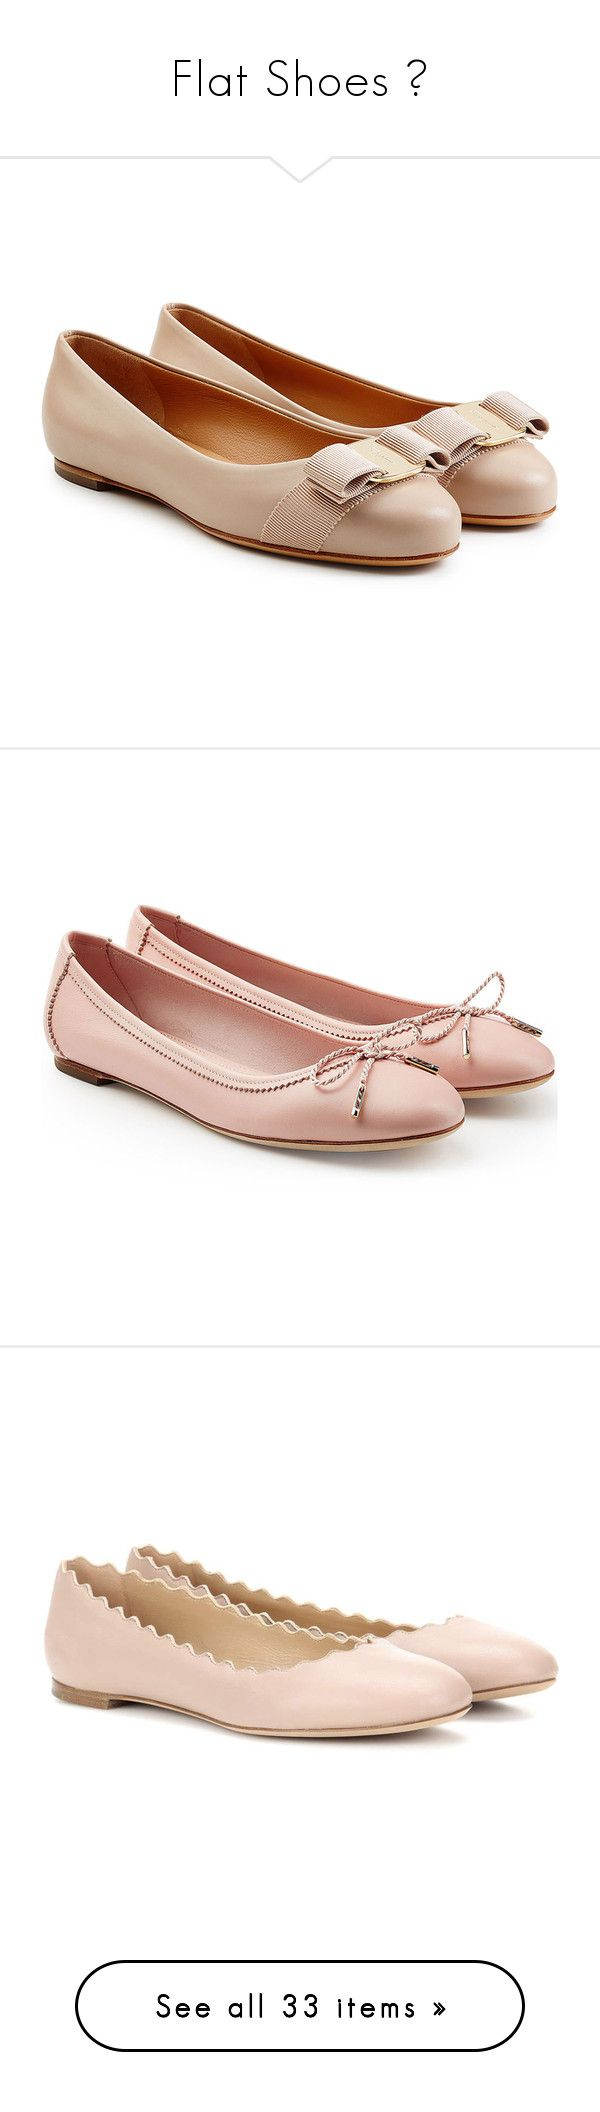 """Flat Shoes 👠"" by indahyogi ❤ liked on Polyvore featuring shoes, flats, beige, ballet pumps, ballet flat shoes, ballerina flat shoes, ballet shoes, leather ballet flats, pink and pink ballet shoes"